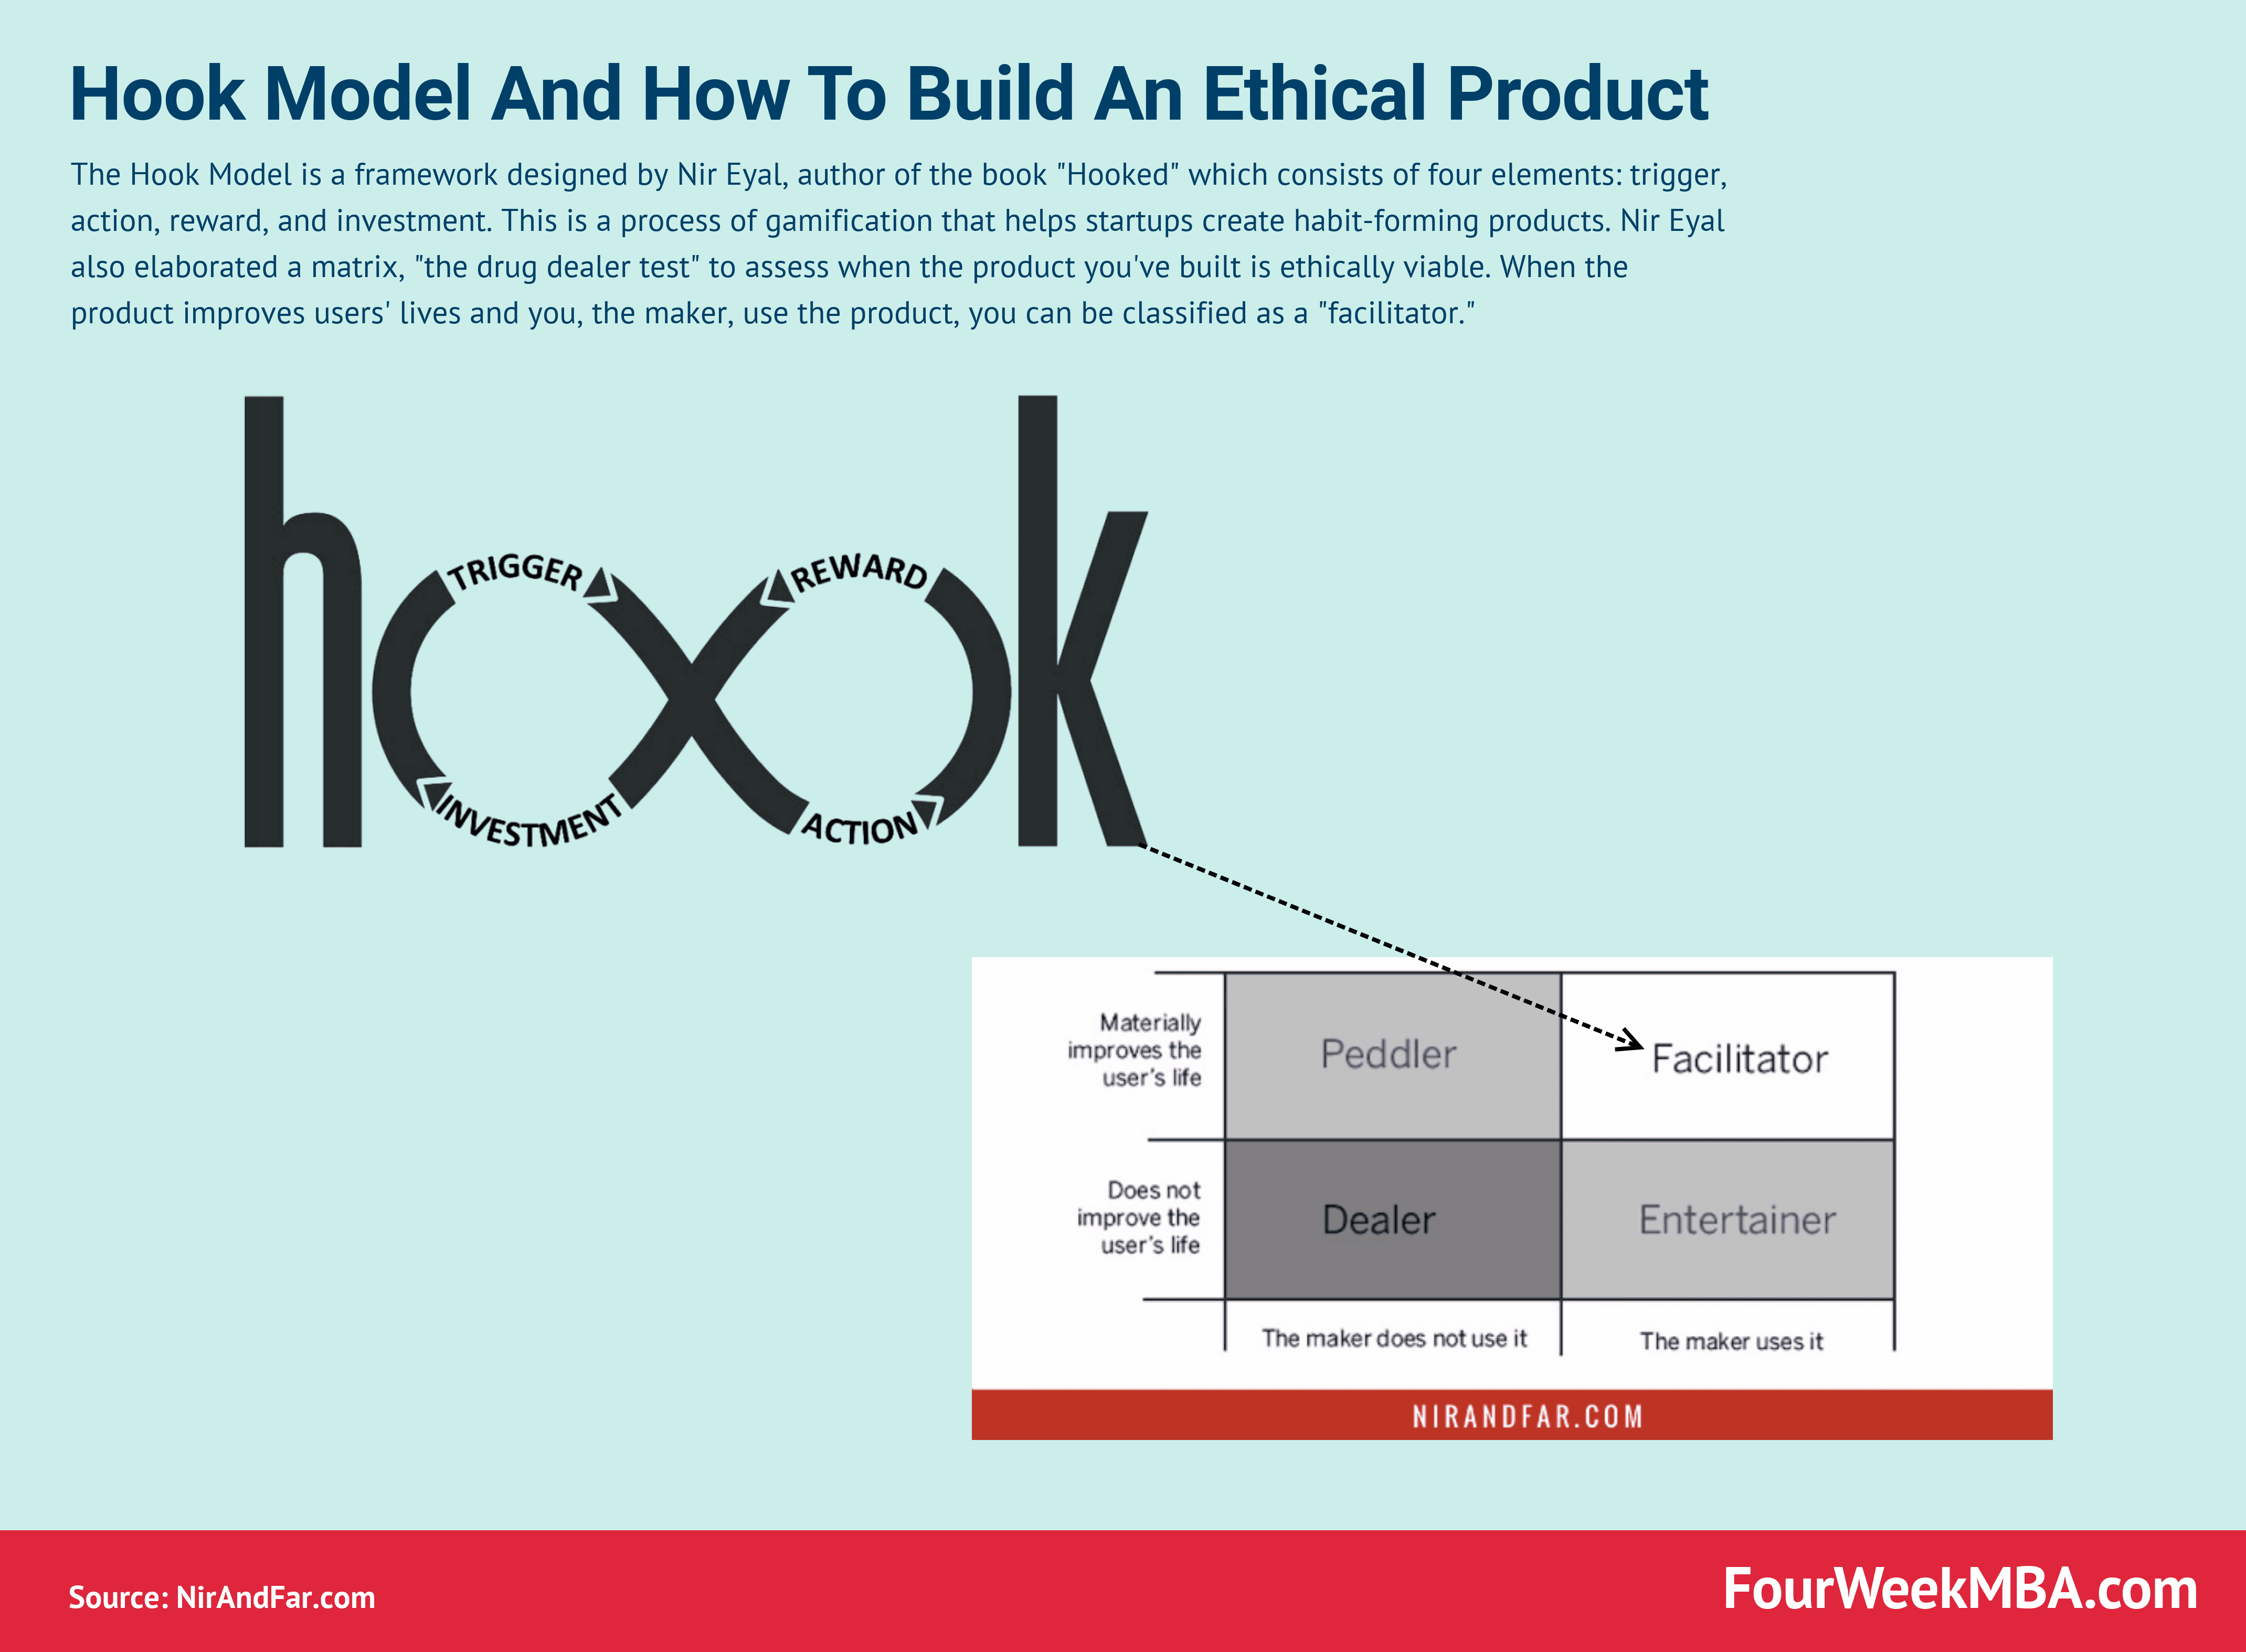 The Hook Model And How To Build It Ethically